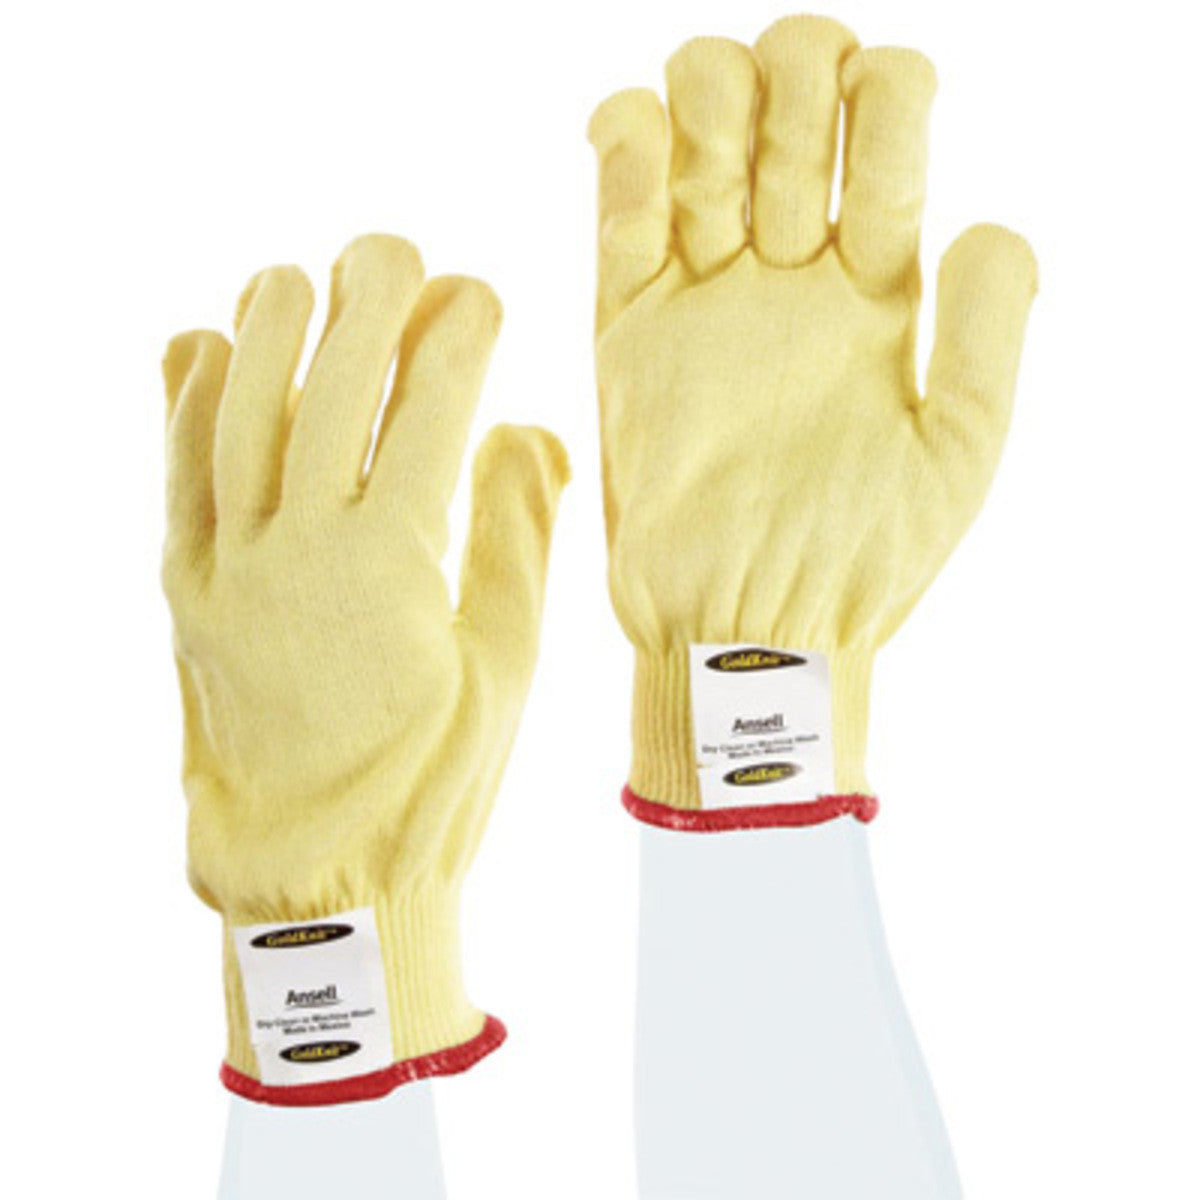 Ansell - GoldKnit String Knit Medium Weight cut Reistant Gloves